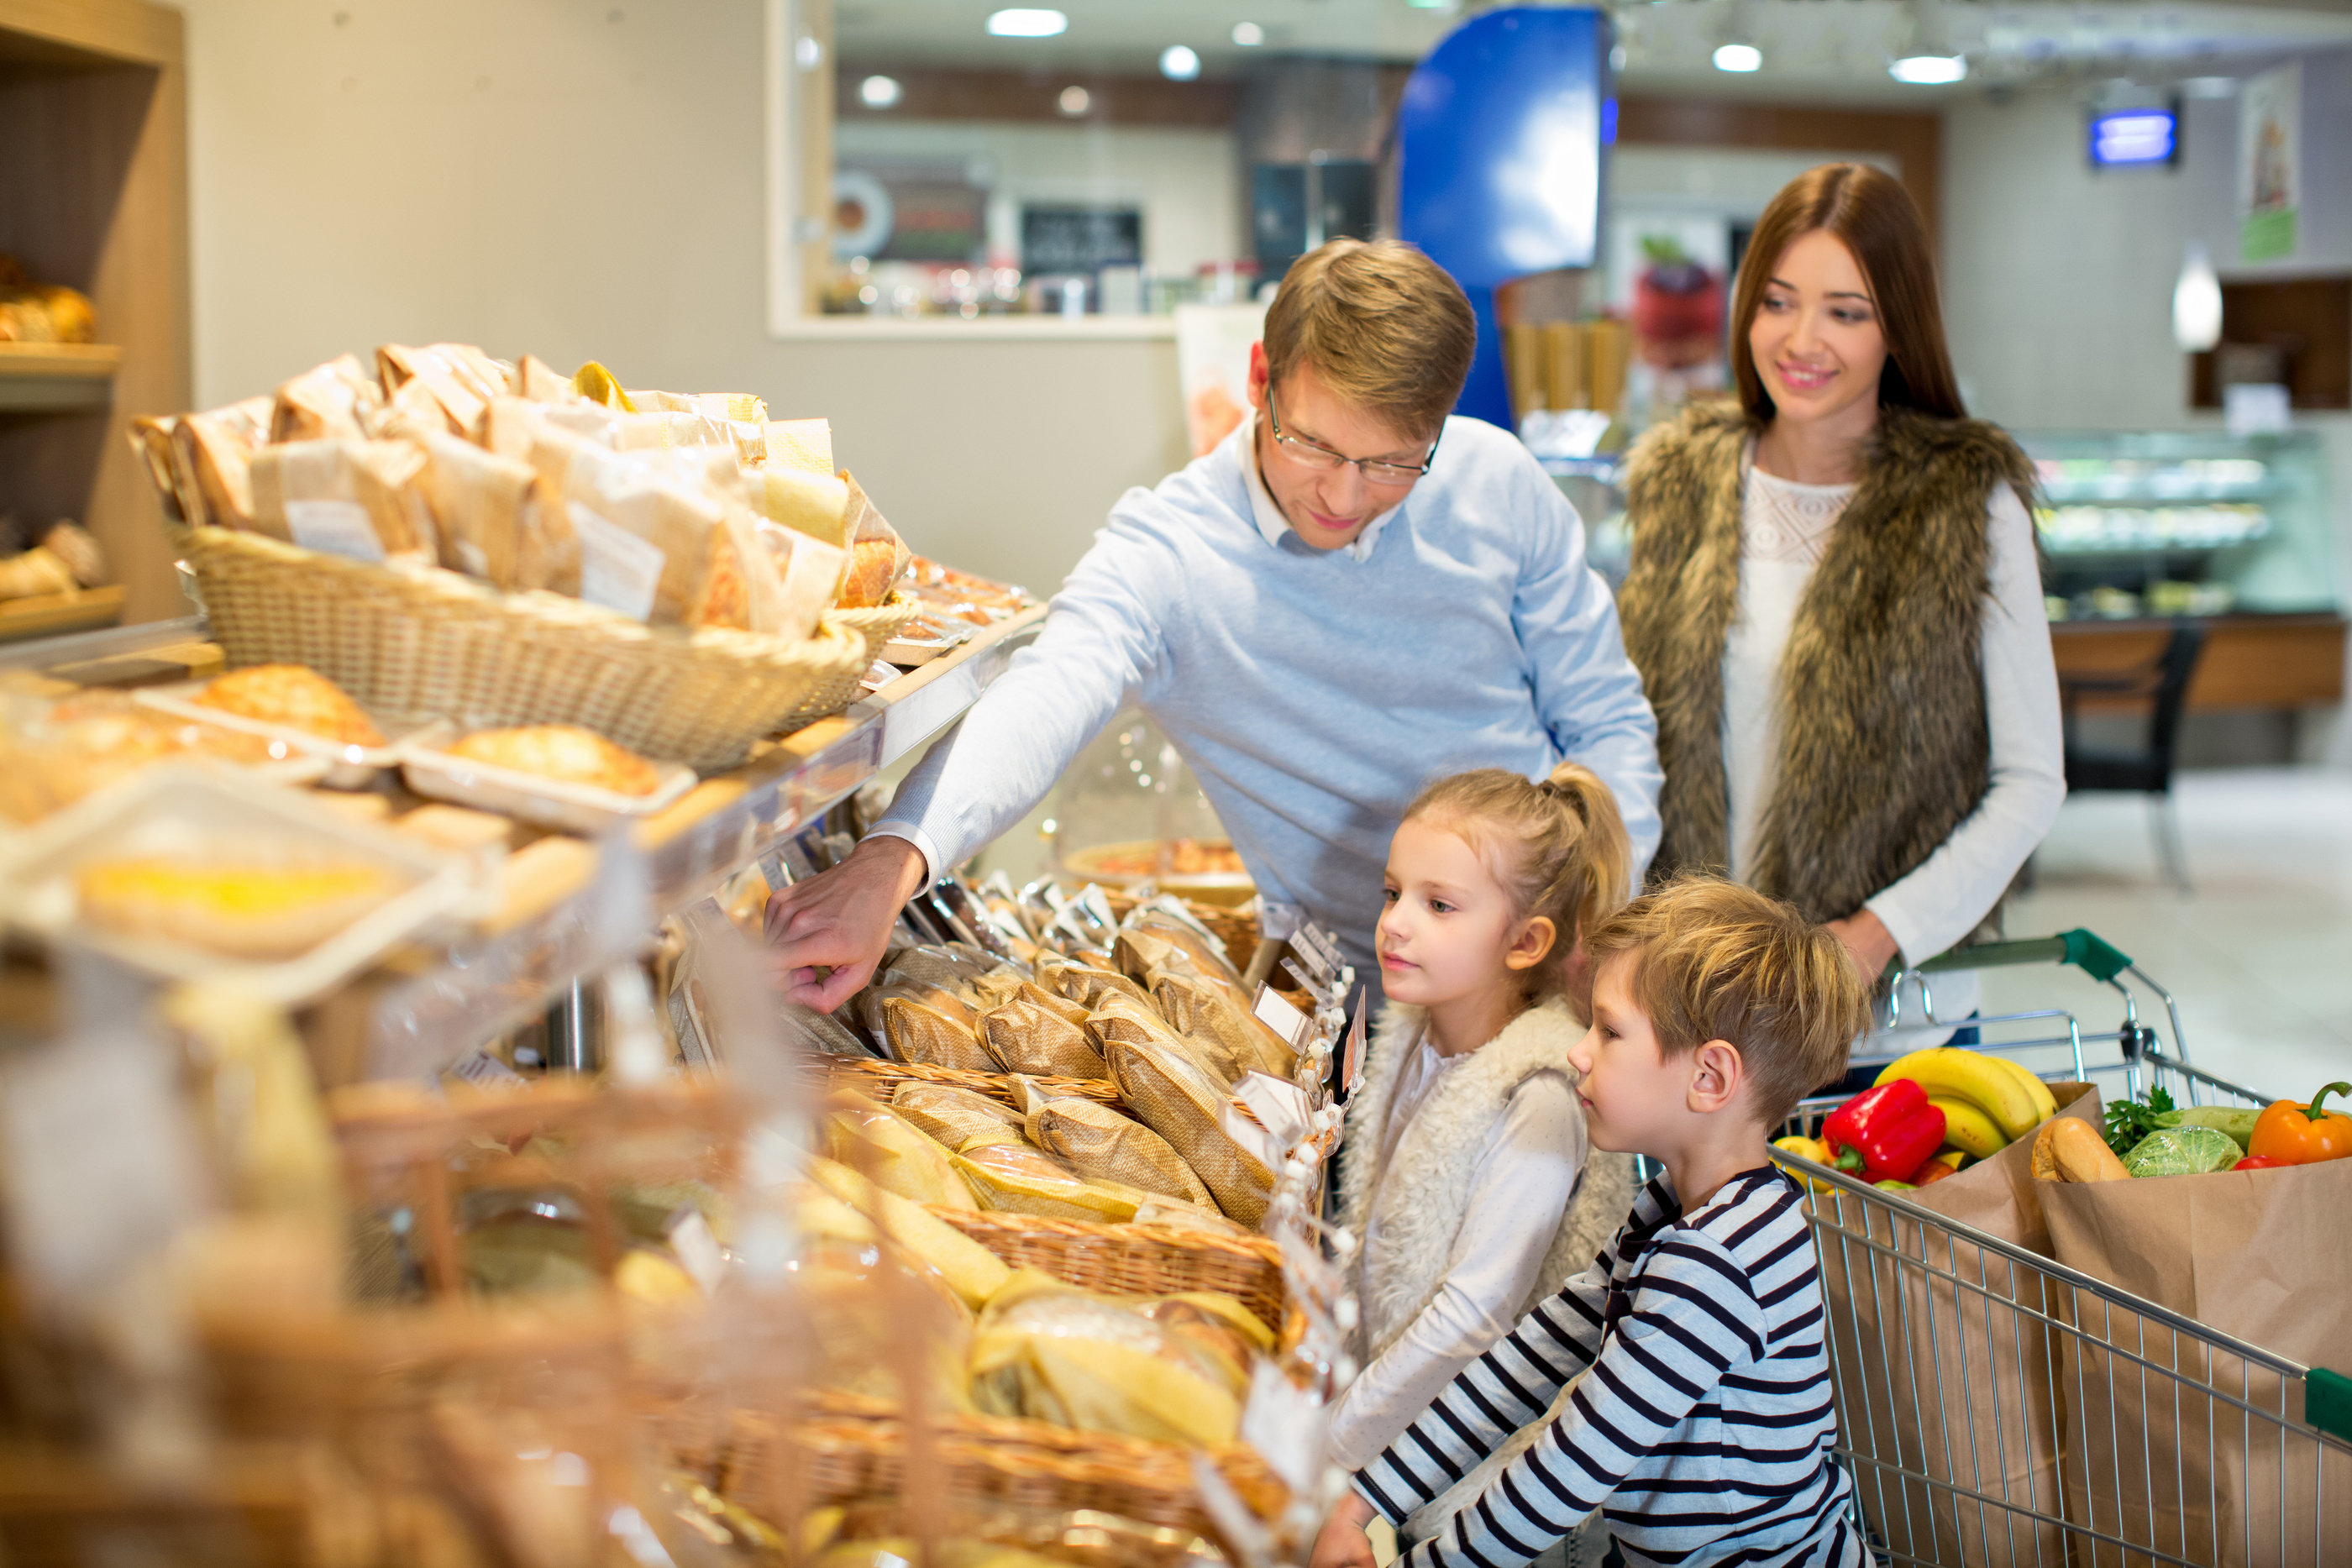 Smiling family in bakery